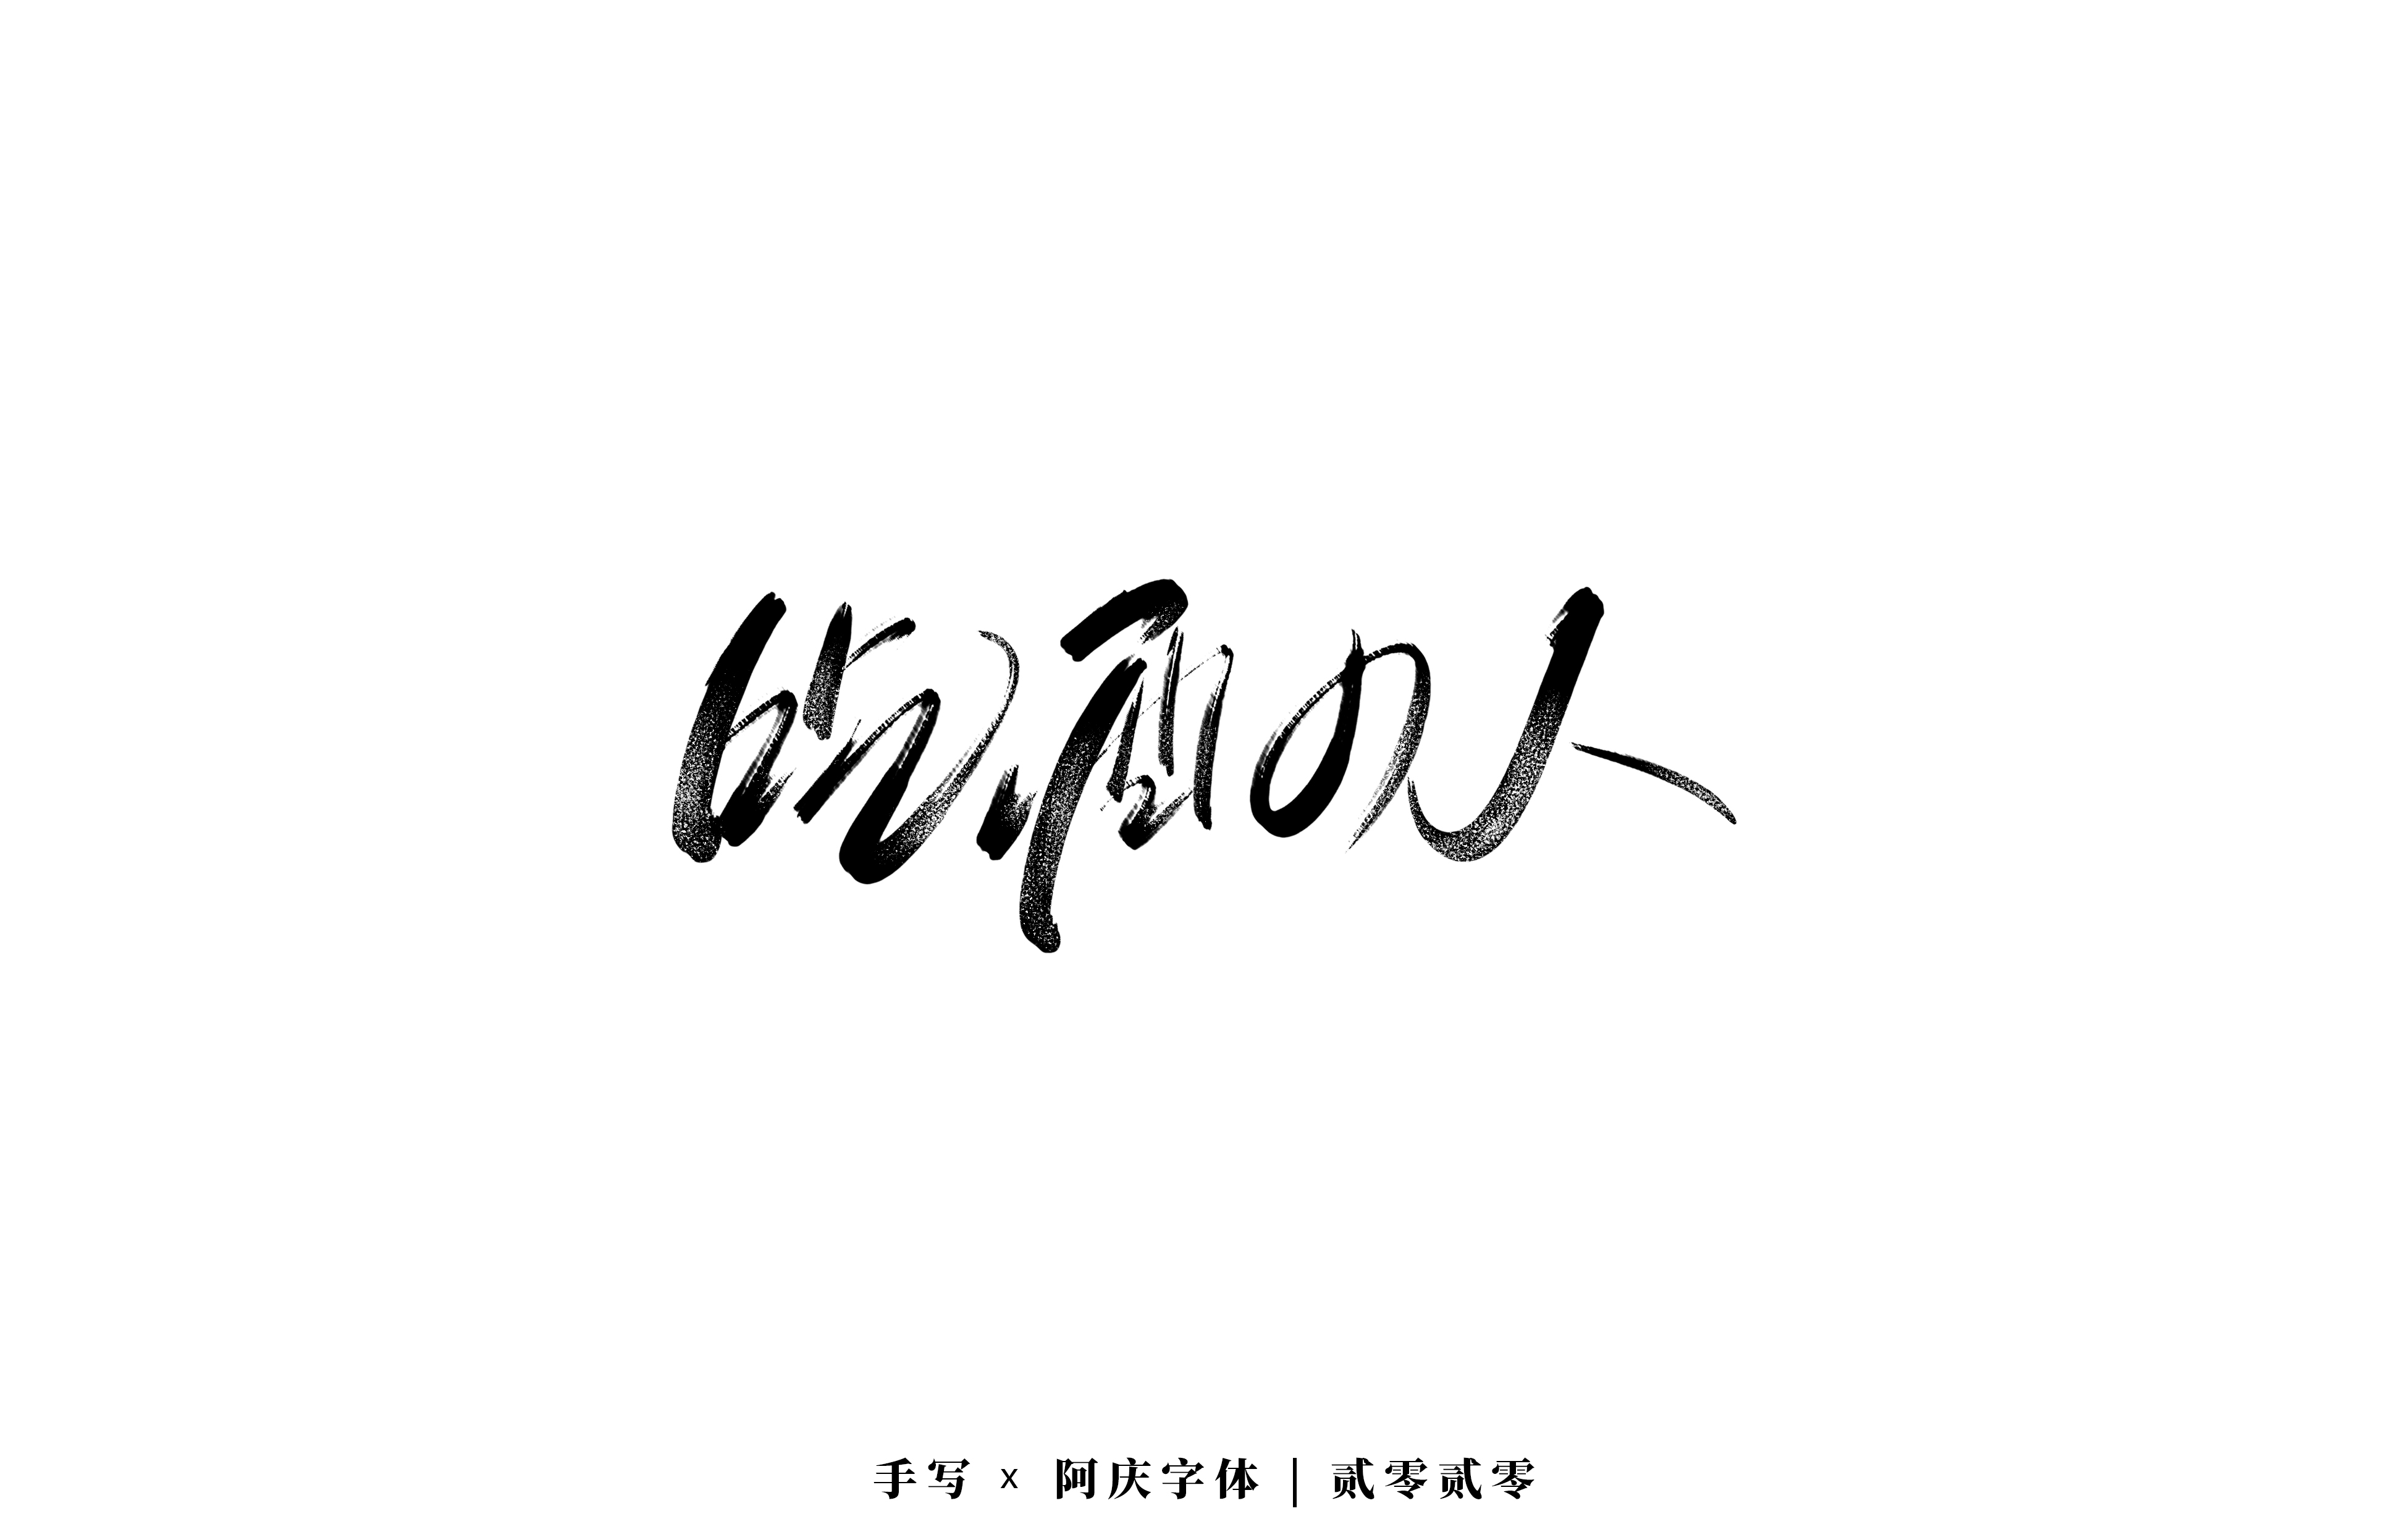 Selected handwriting font design in the first half of 2020